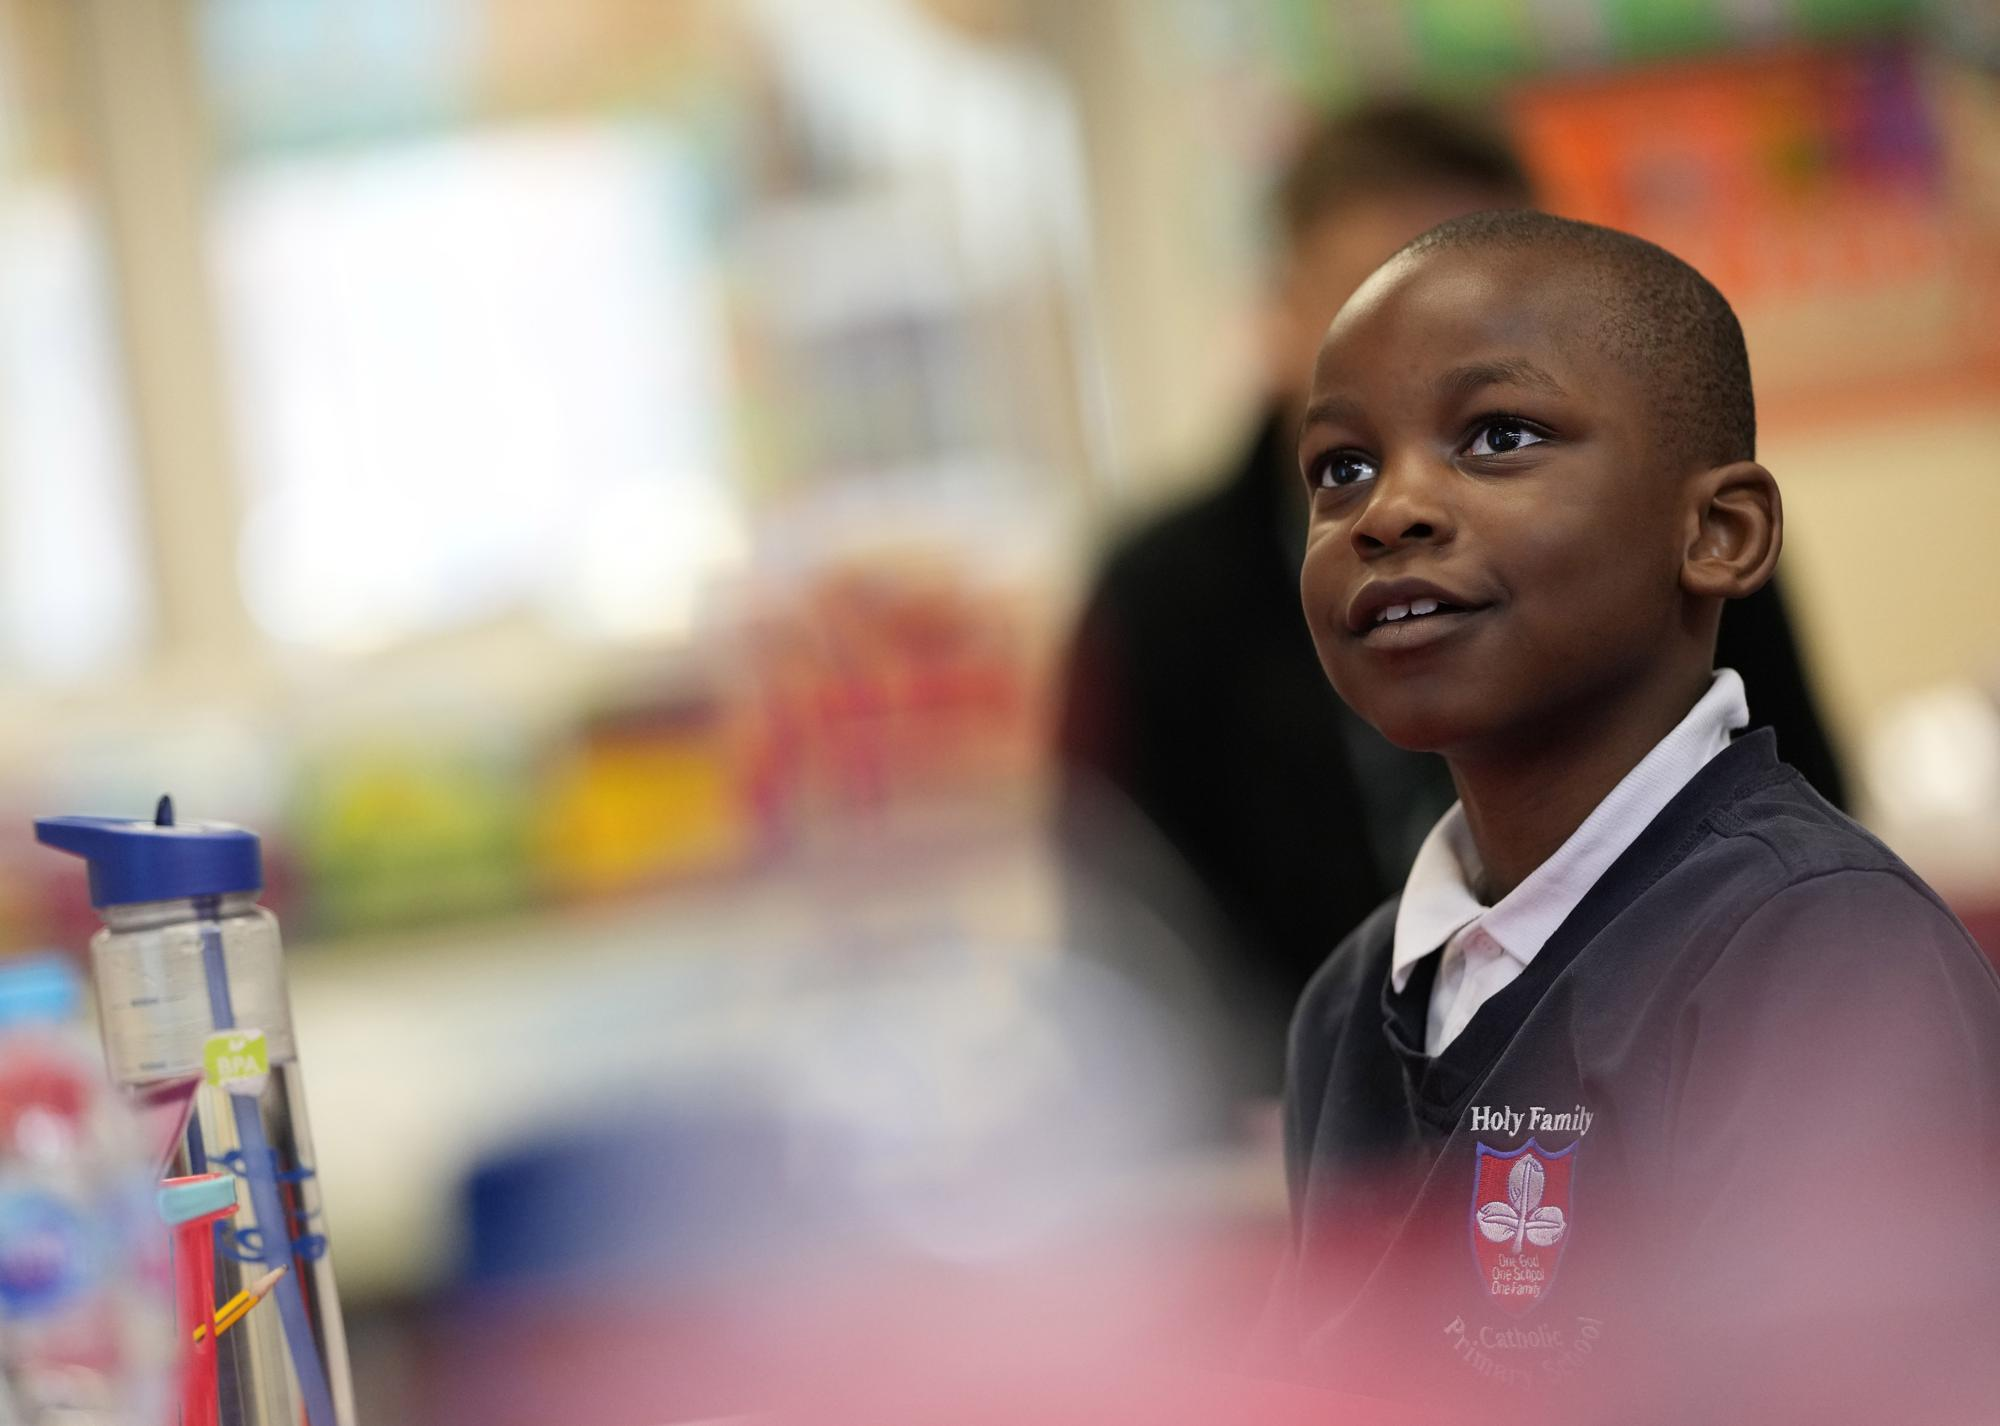 Noah Popula listens to his teacher during a year 2 lesson at the Holy Family Catholic Primary School in Greenwich, London, Thursday, May 20, 2021. (AP Photo/Alastair Grant)